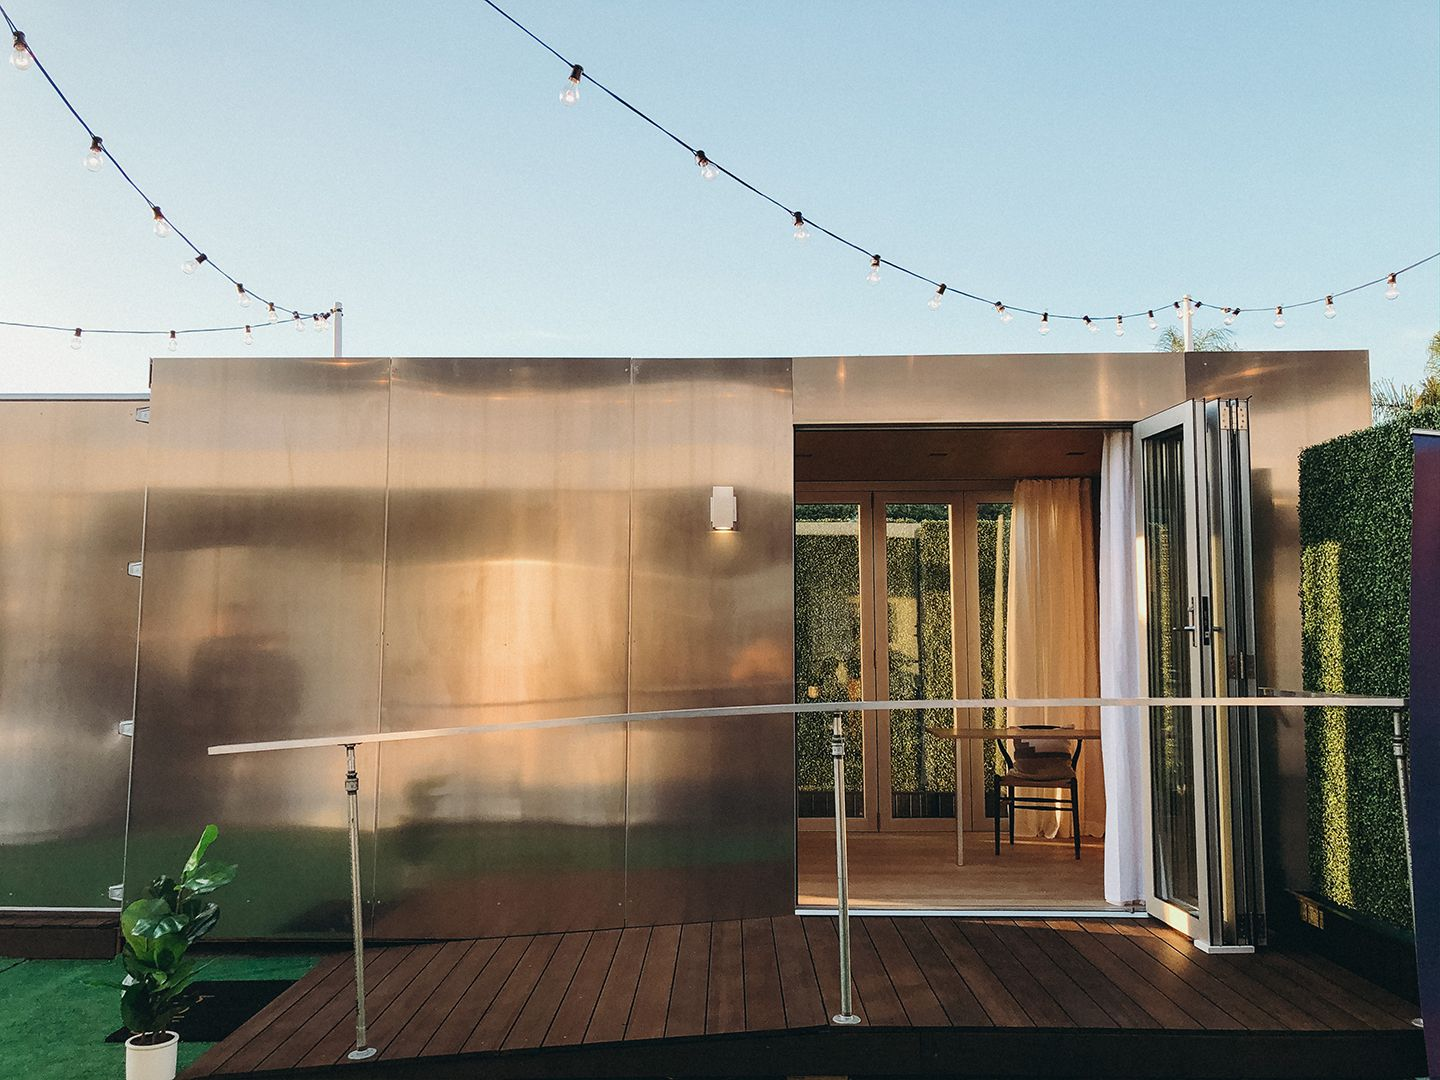 Buhaus: The Luxe Prefab Container Home That's Transforming Temporary Housing